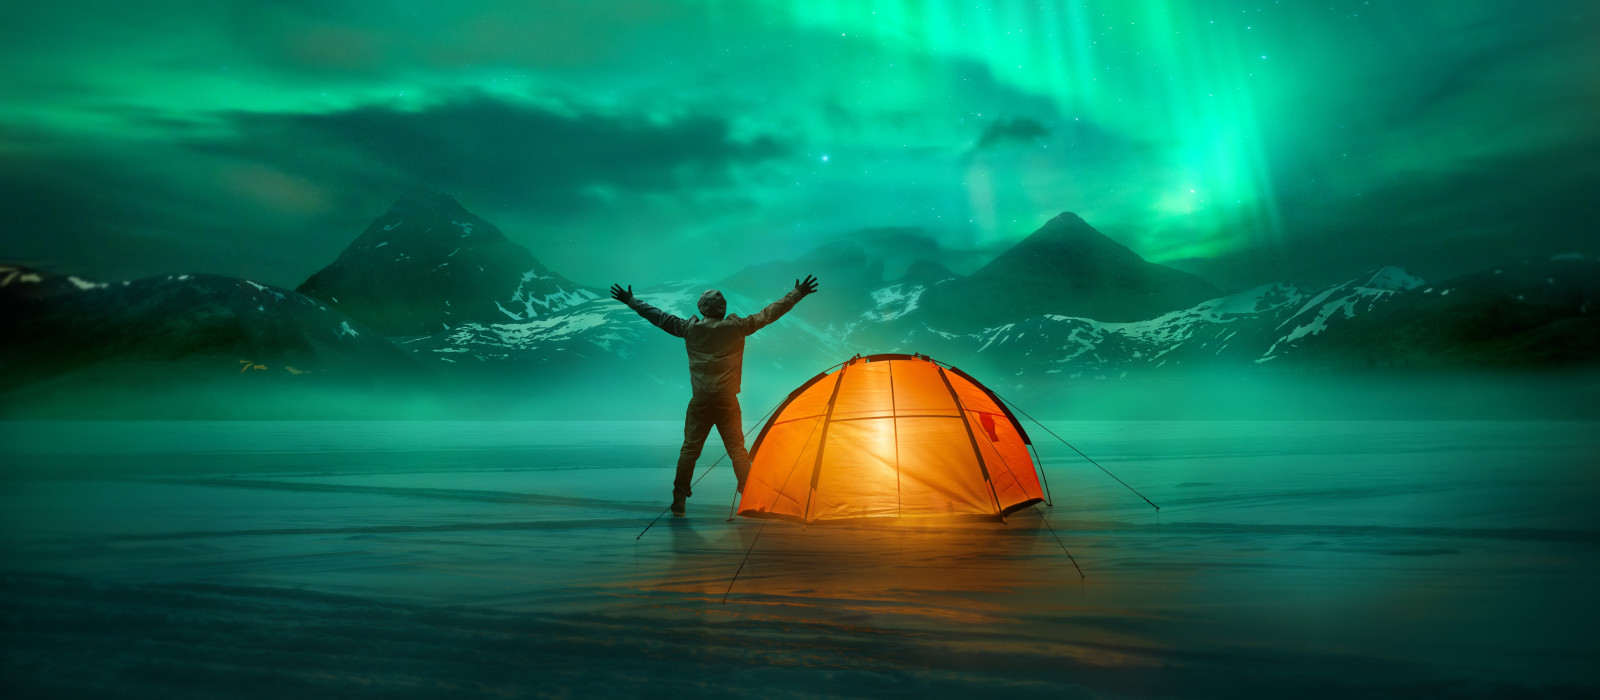 Best time to visit Iceland - View the Northern Lights